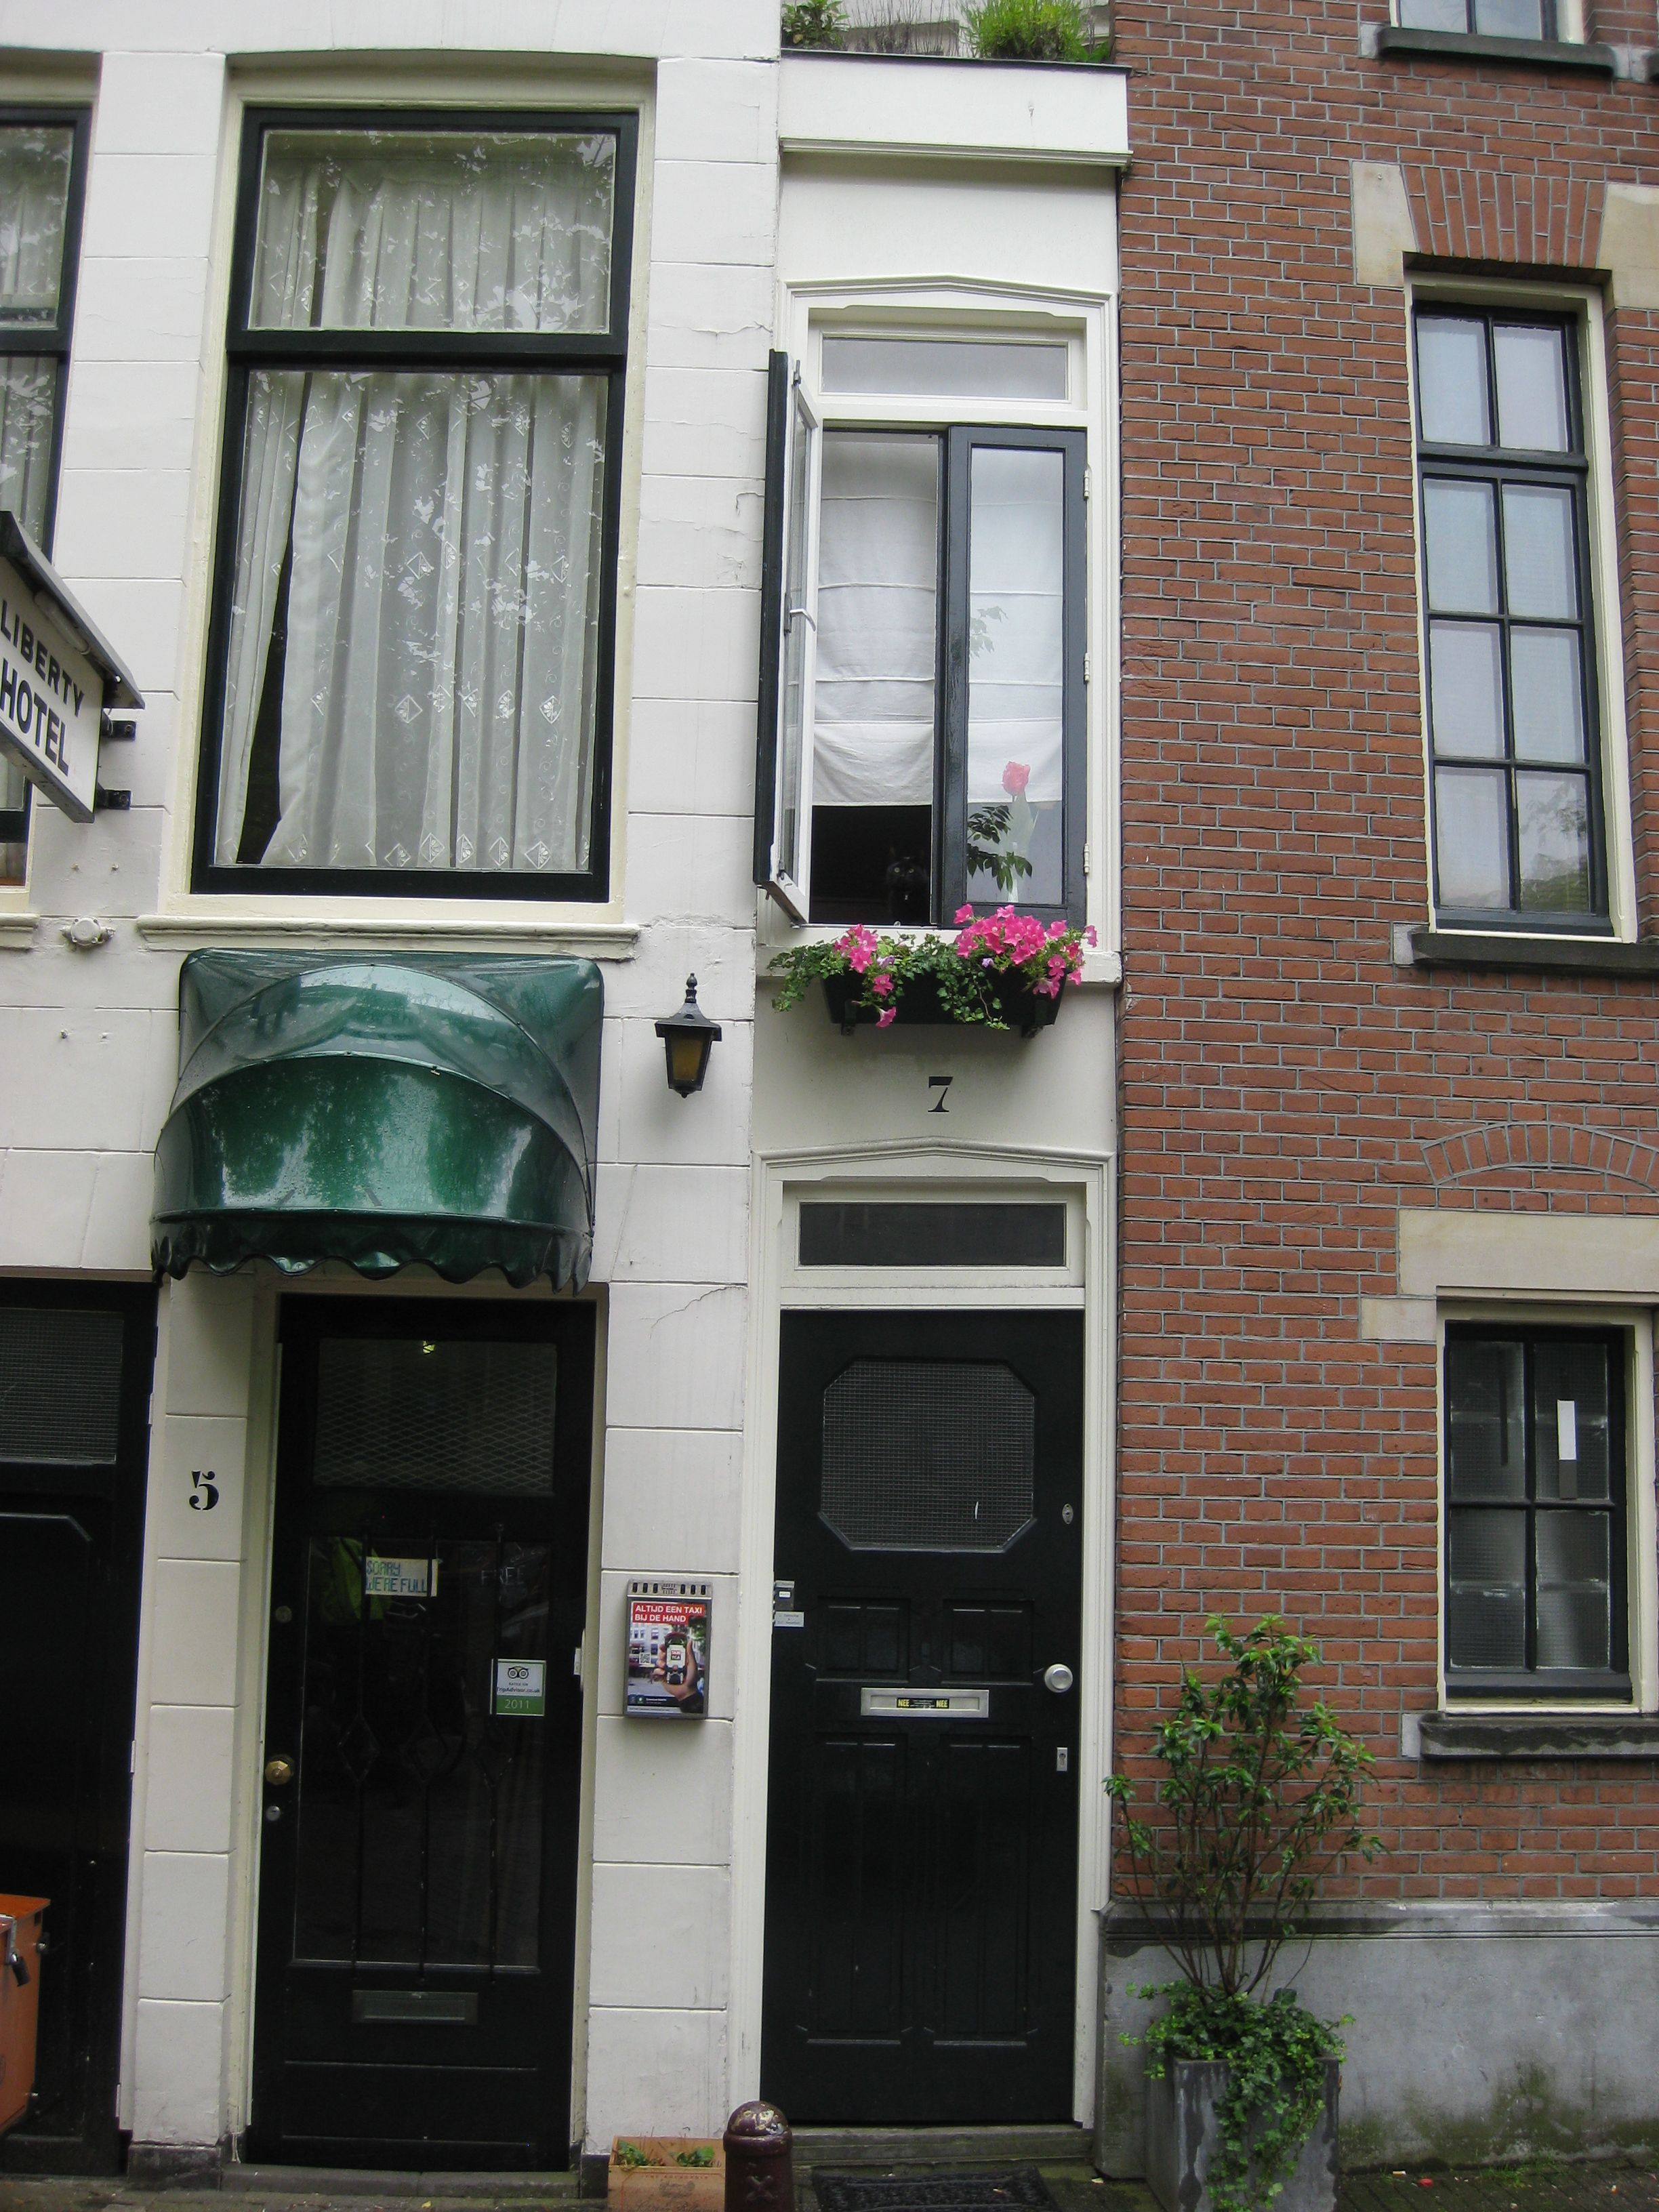 The Worlds Narrowest House At 1m Wide Amsterdam Amsterdam Travel Narrow House Amsterdam